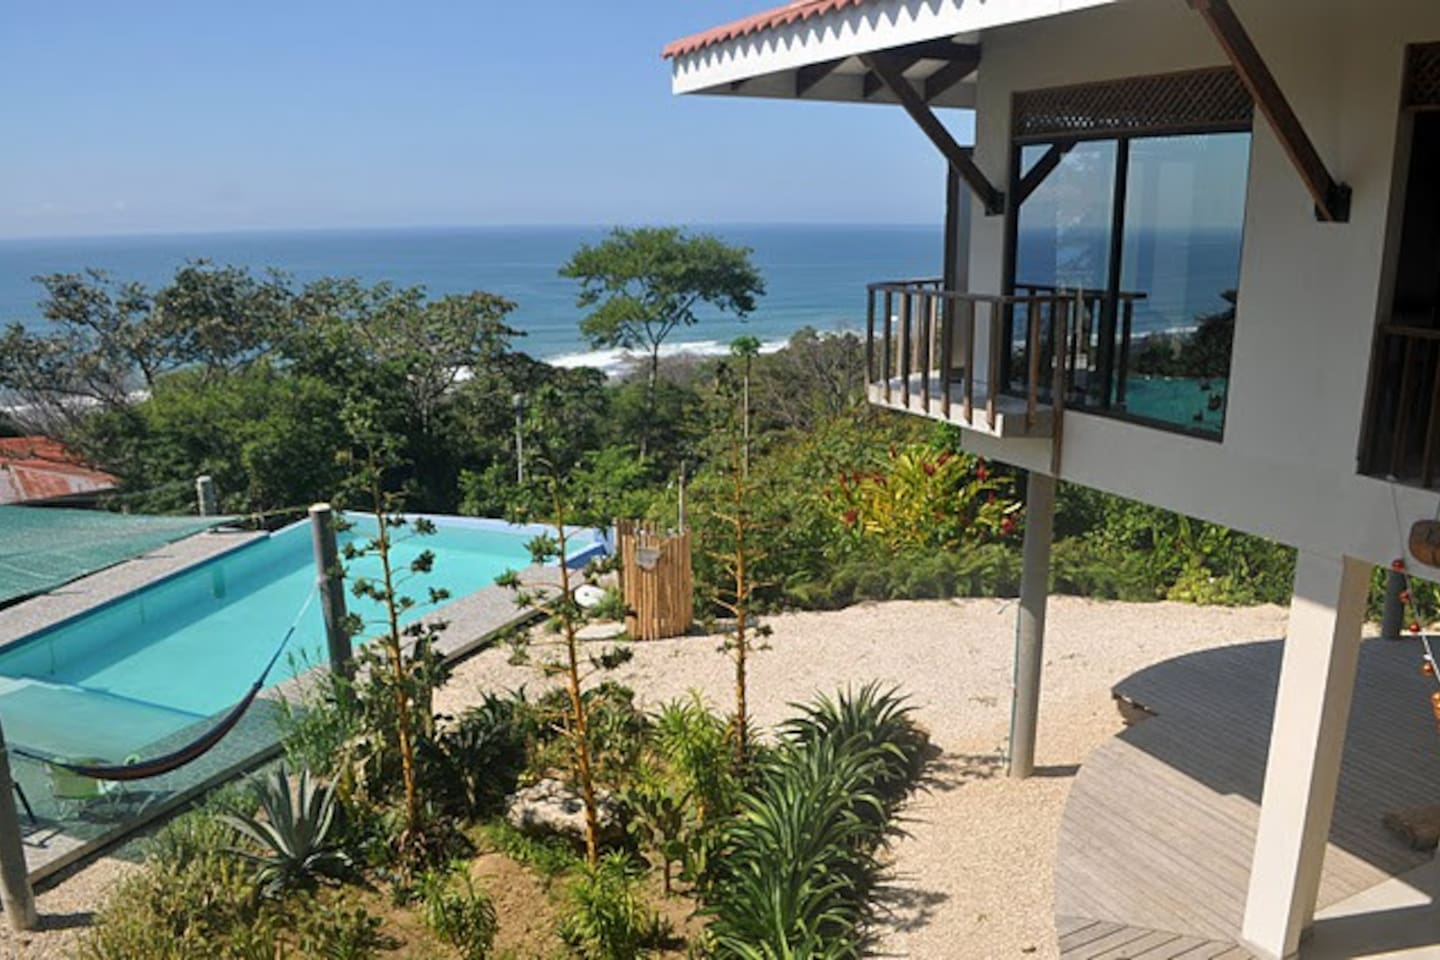 The  House and the great views of Ocean and Pool